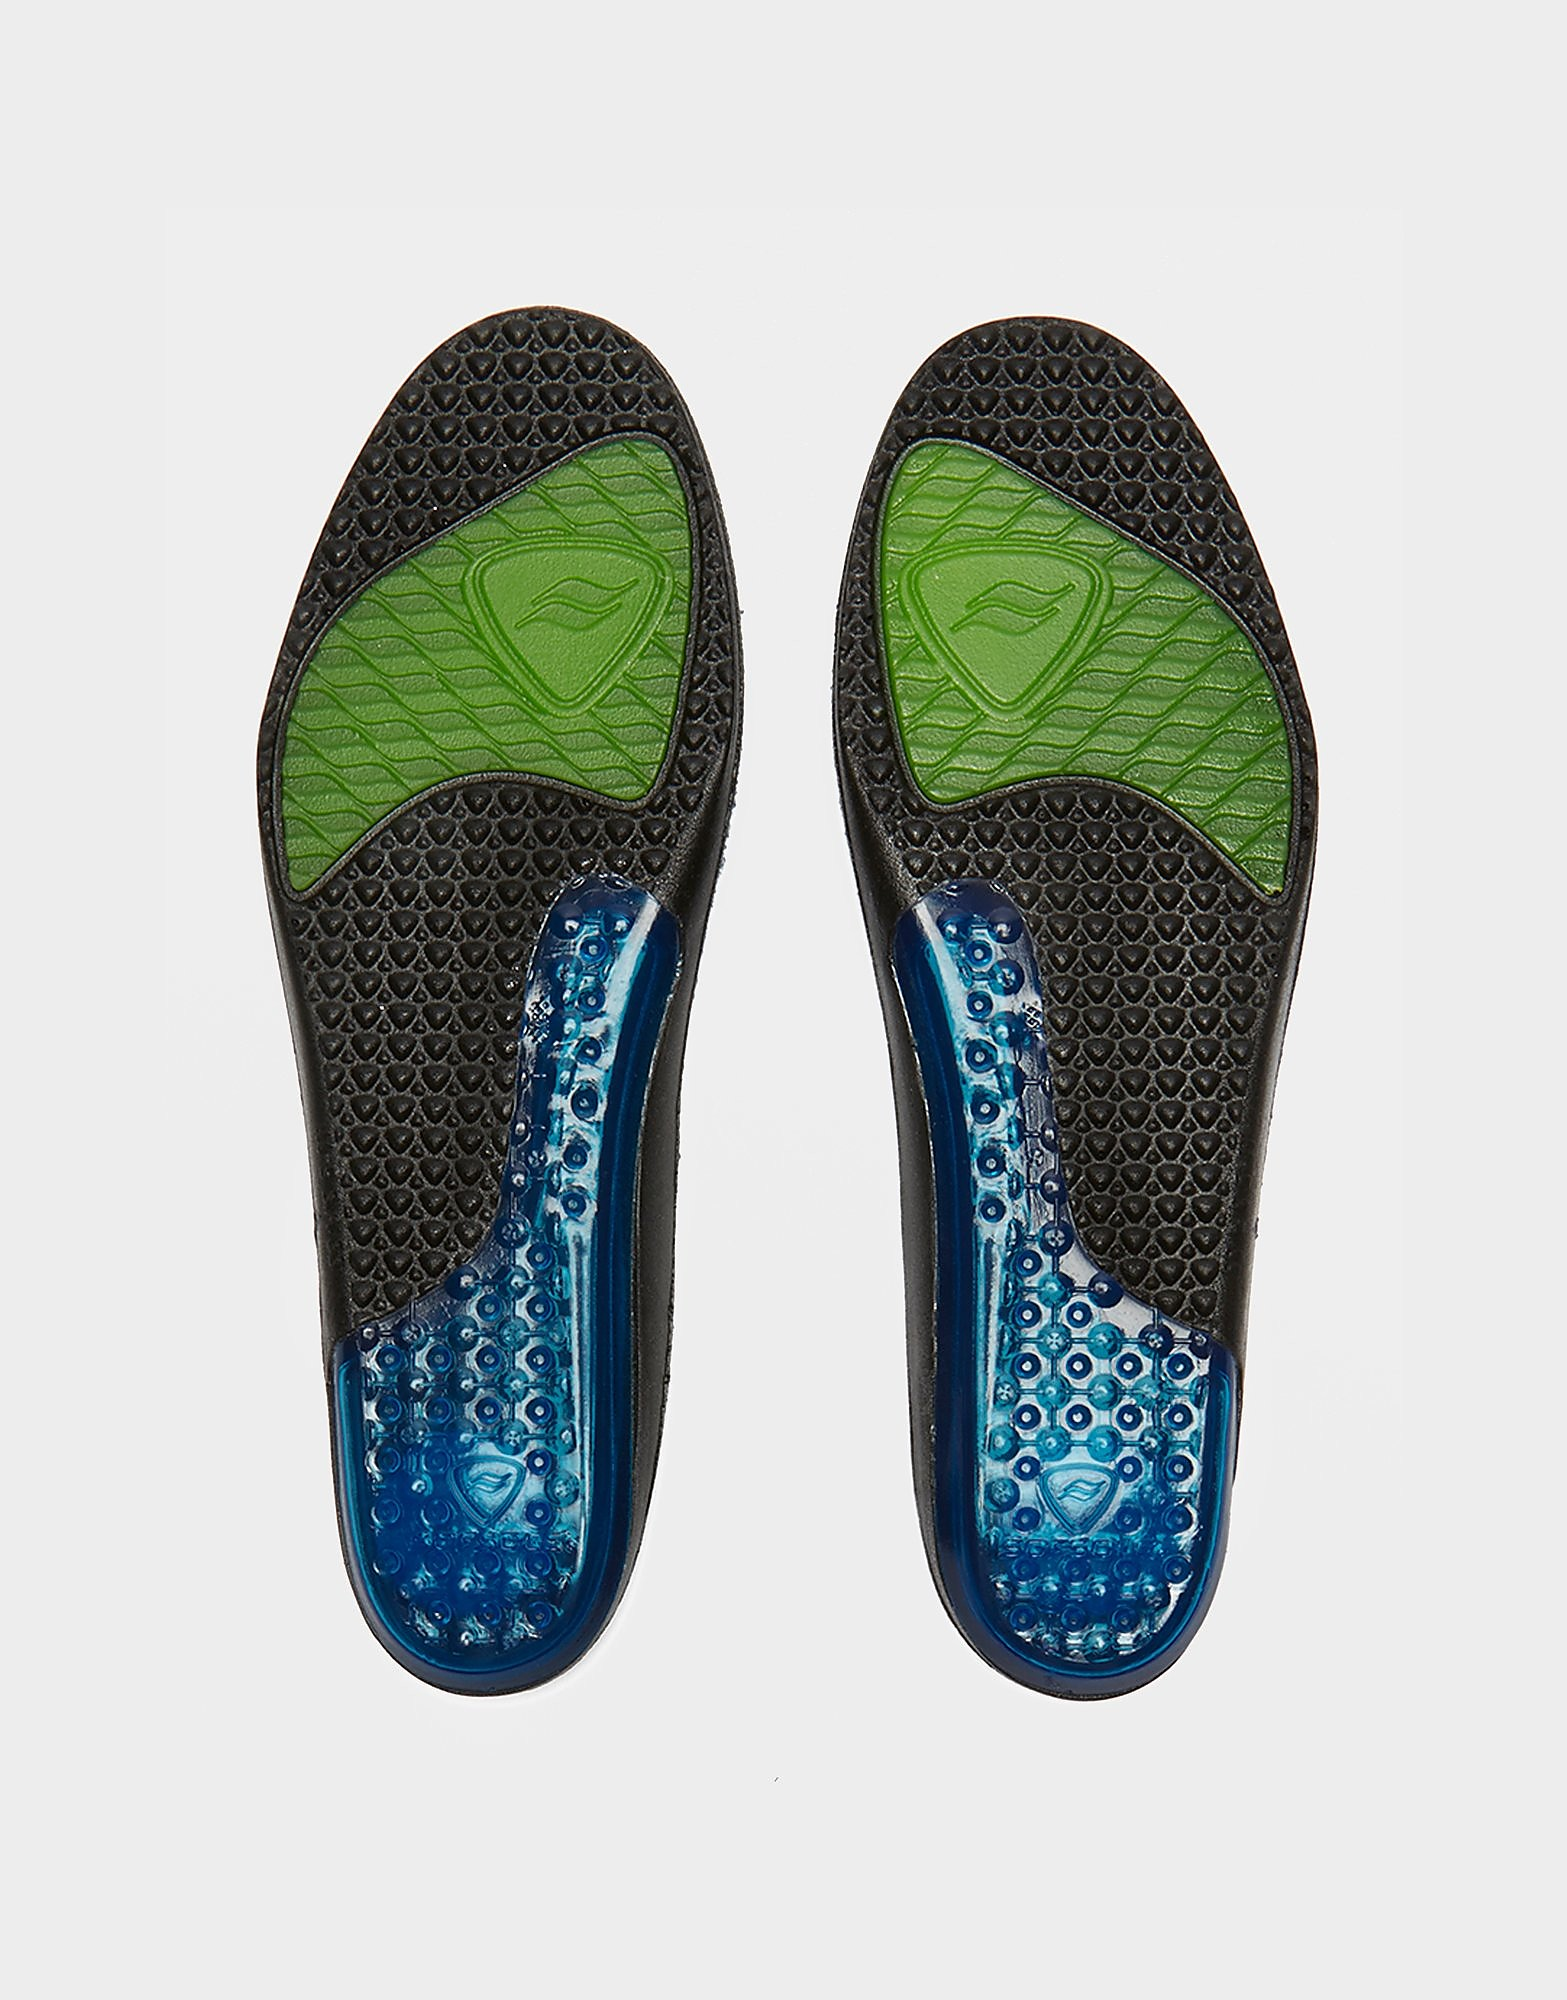 Sof Sole Airr Insole voor dames